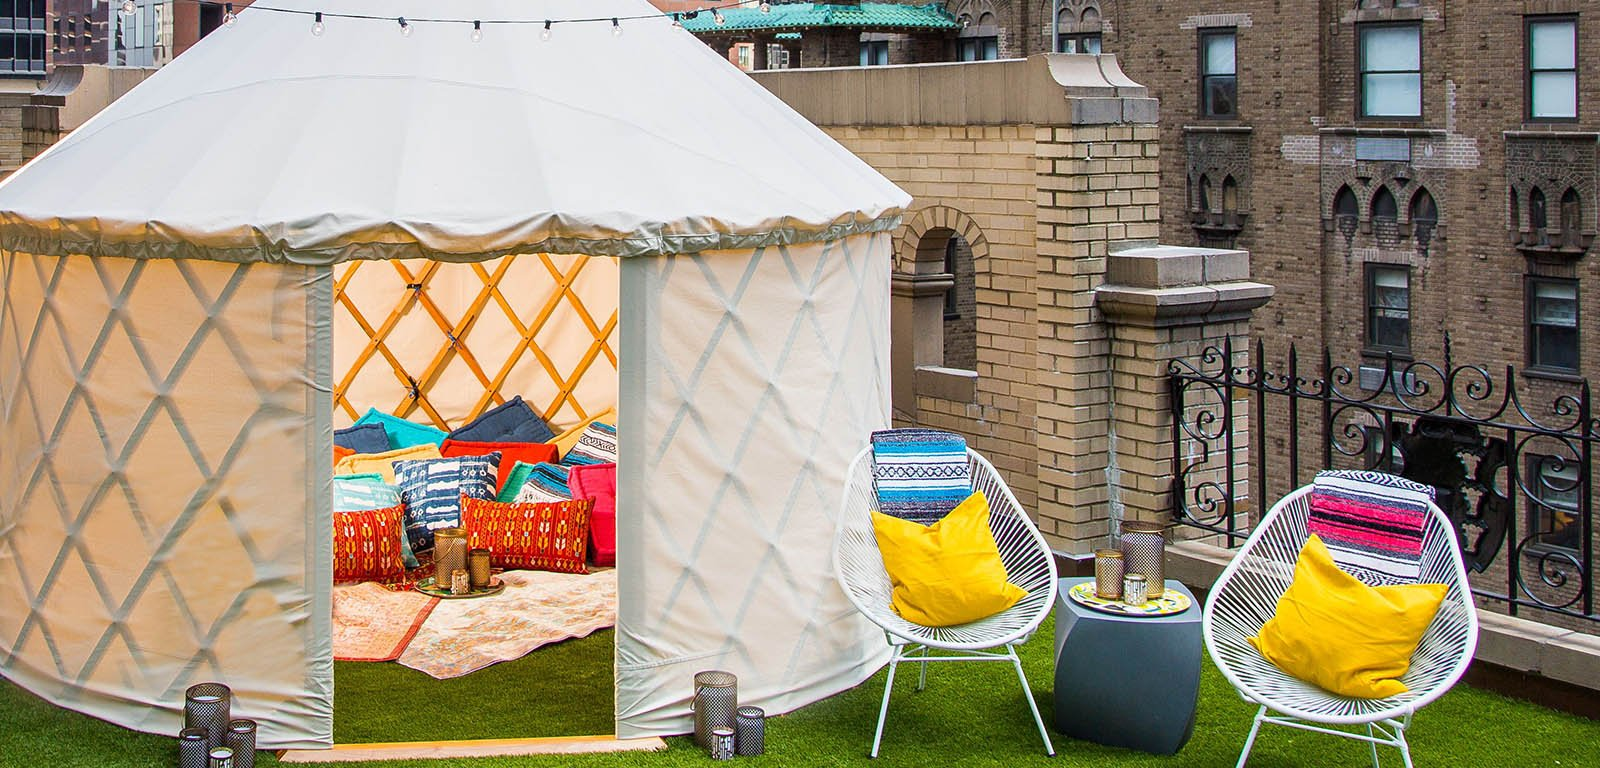 Theluxurytrends_glamping_hotelw-new_york